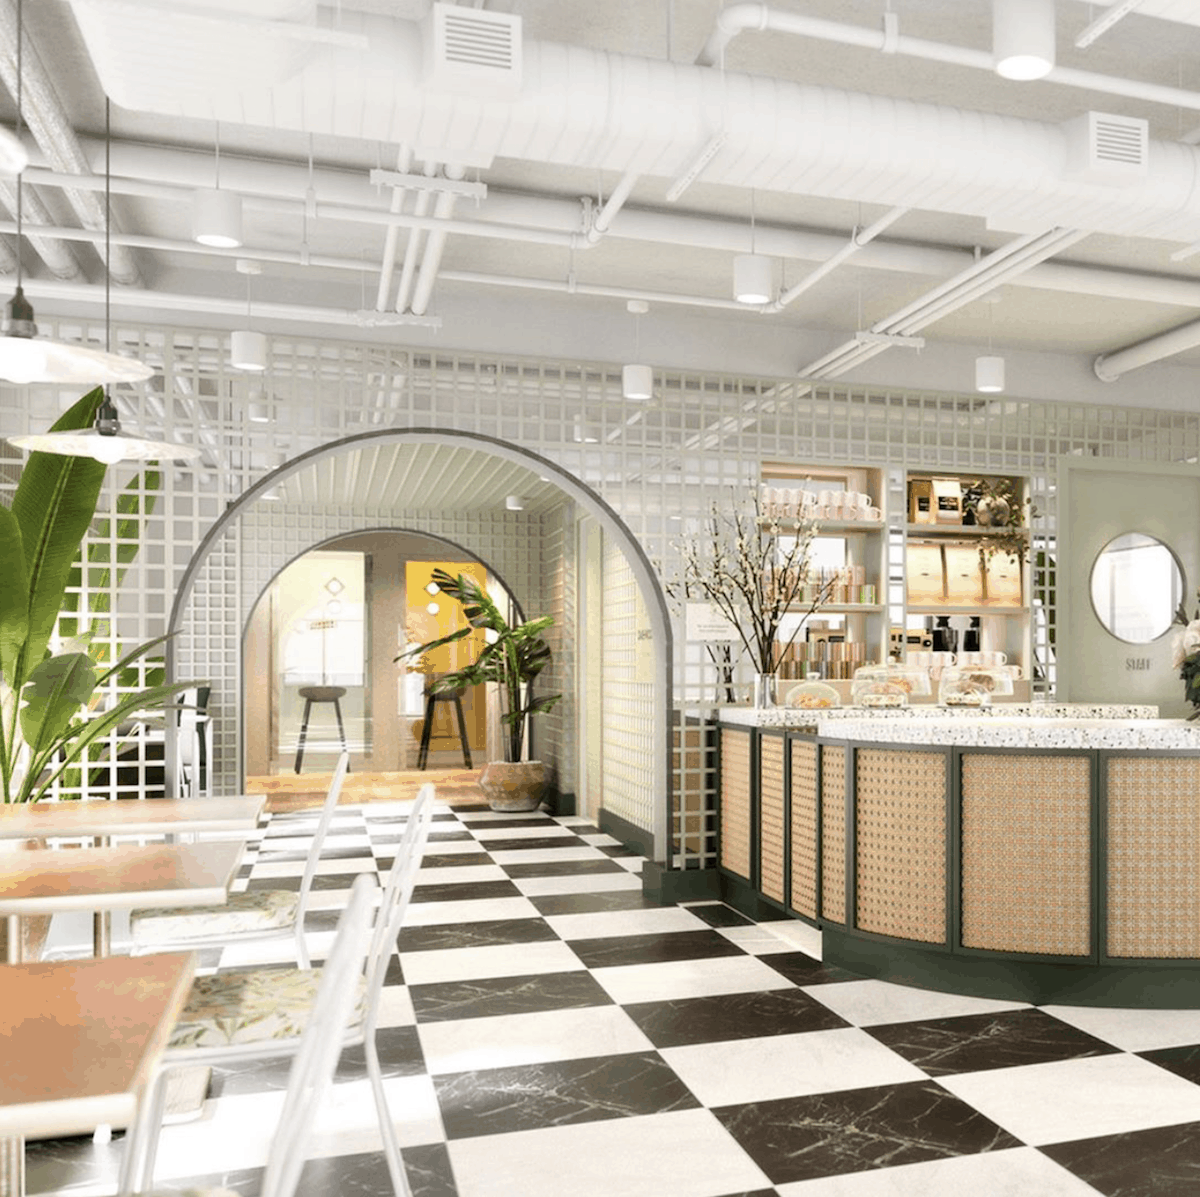 The Wing is a co-worker space designed specifically for women to feel safe, empowered to make connections and generate opportunities.